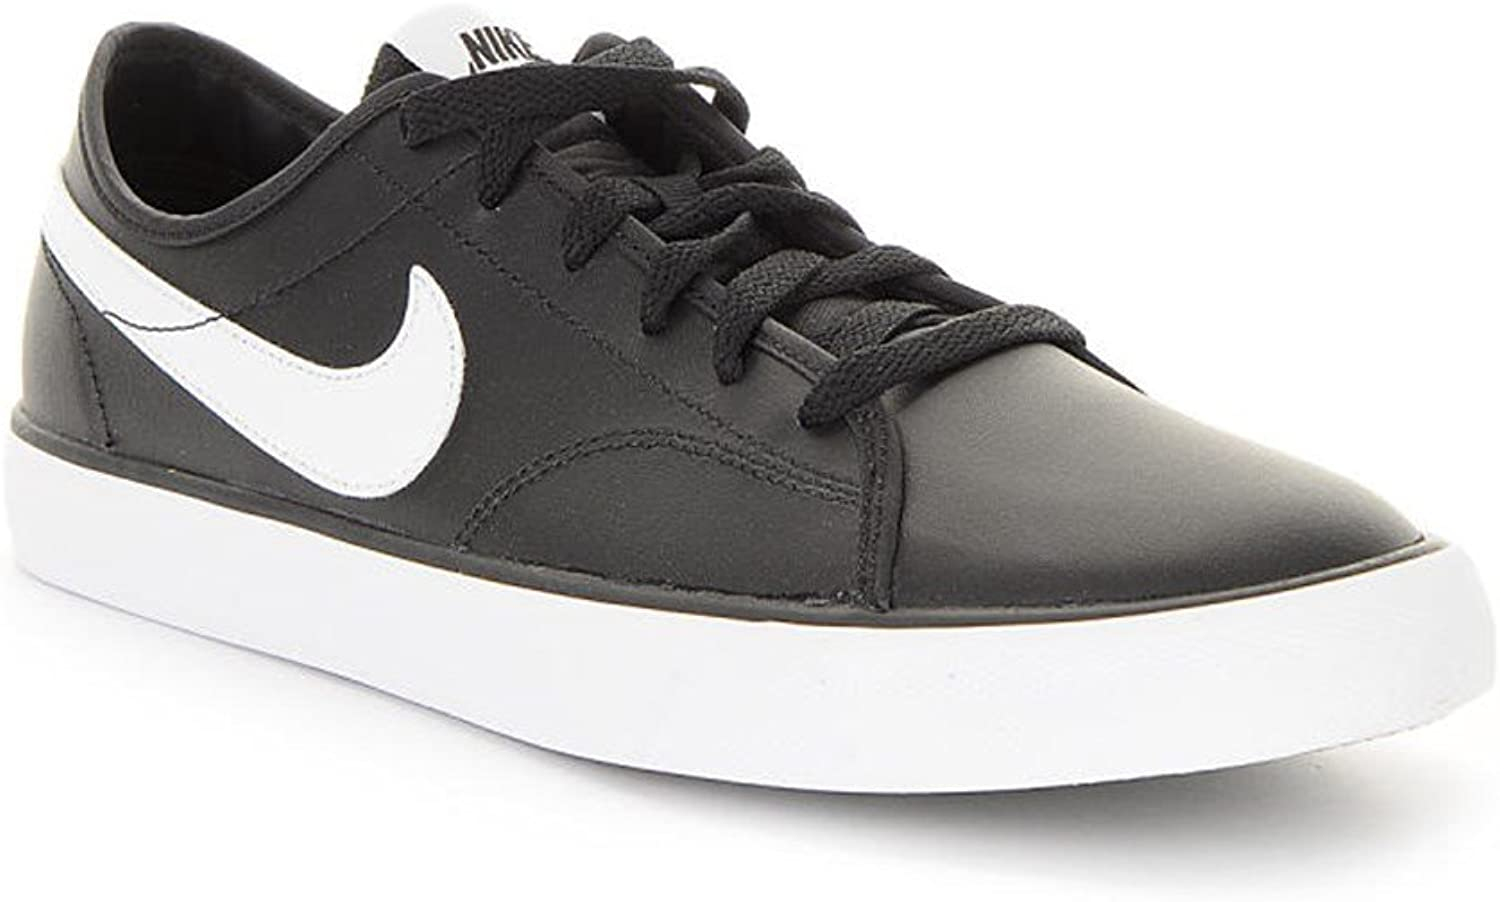 Nike - Primo Court Leather - 644826012 - color  Black-White - Size  6.0